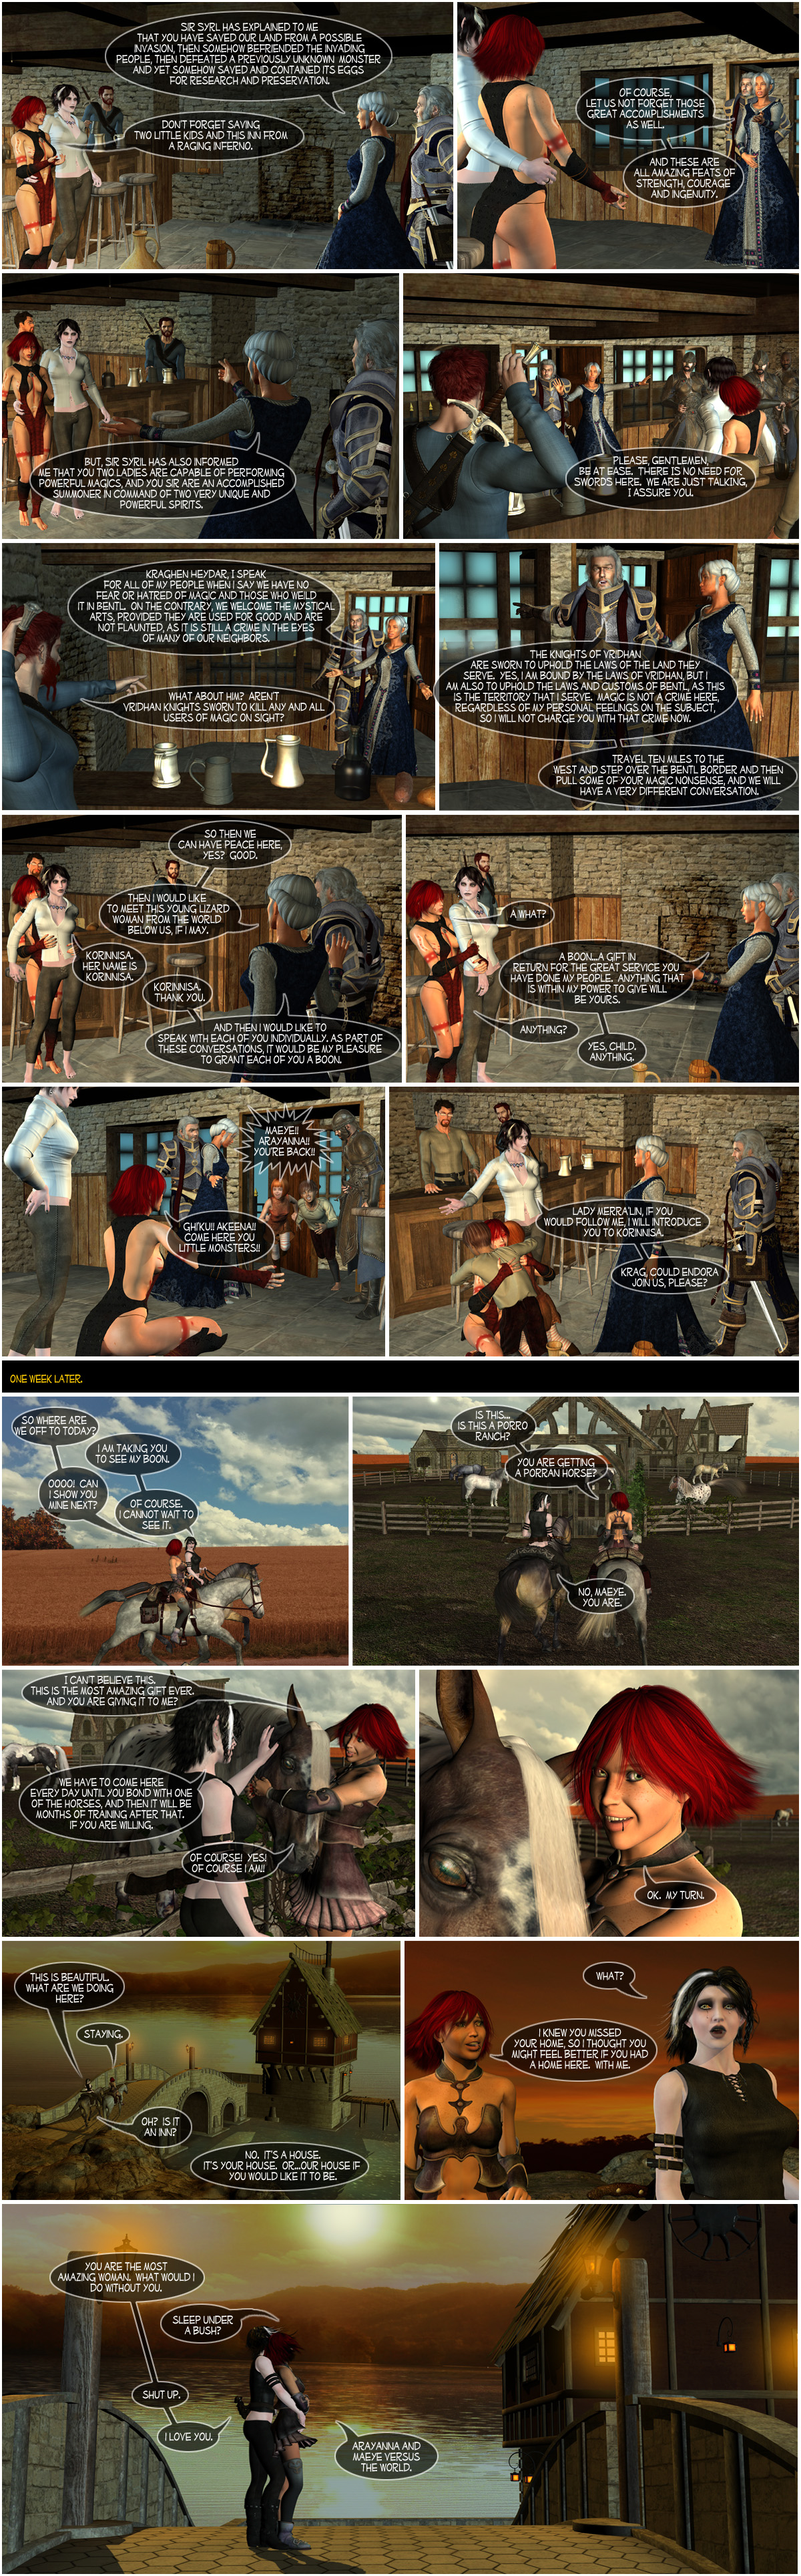 Book 1, Chapter 6, Page 9